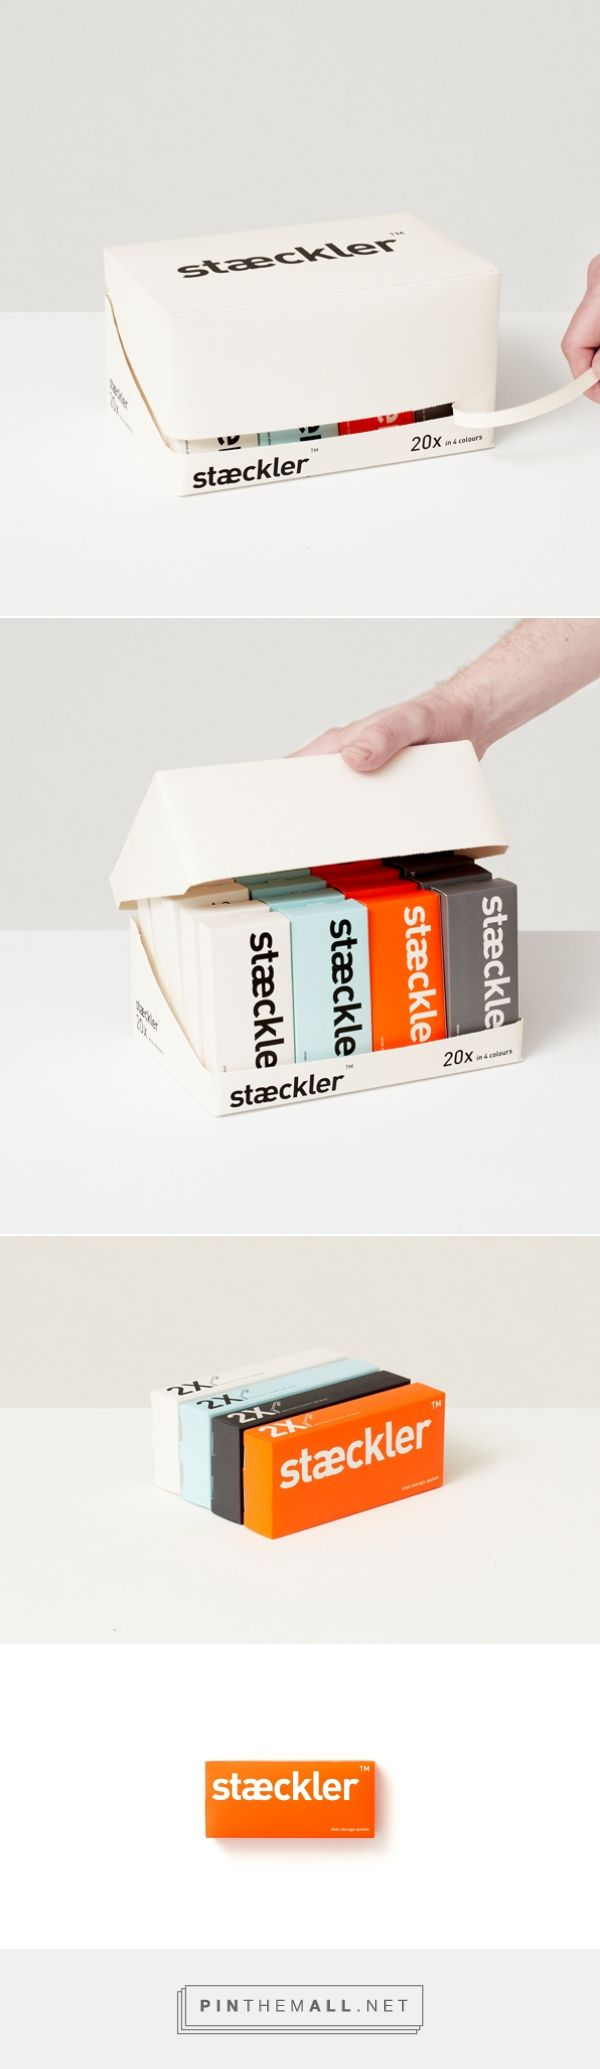 Staeckler Packaging | PostlerFerguson